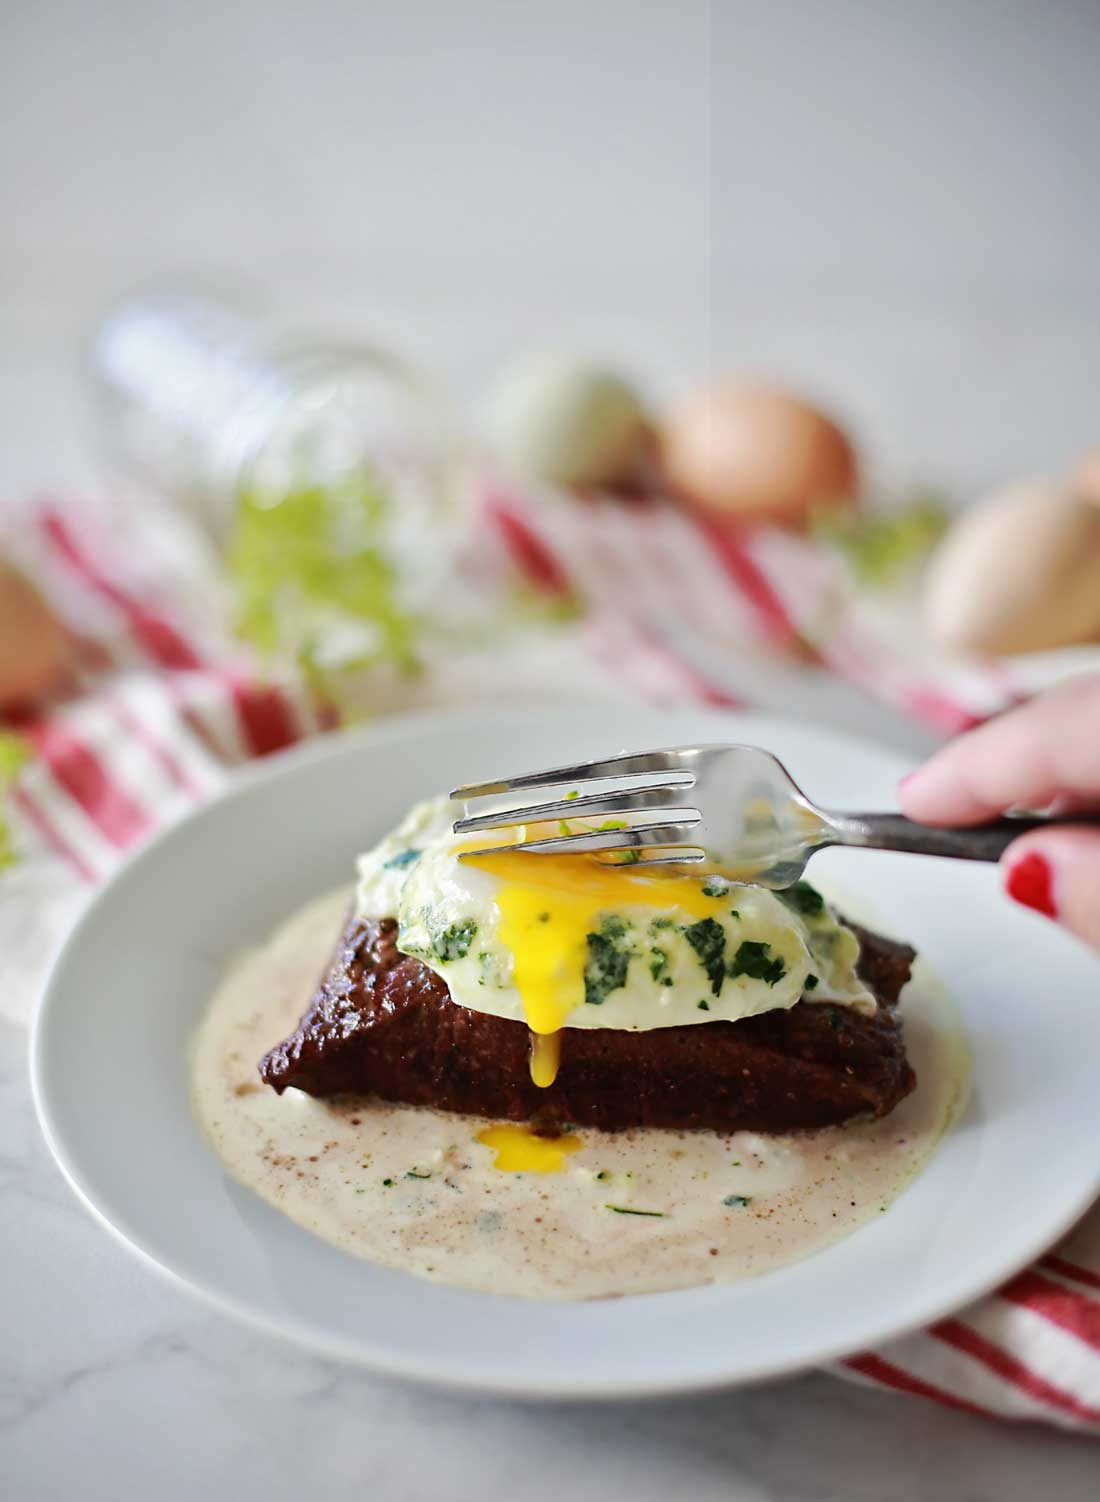 Steak and eggs with herbs and cream. Perfectly cooked flat iron steaks topped with wonderfully cooked eggs and a thick cream of herbs.